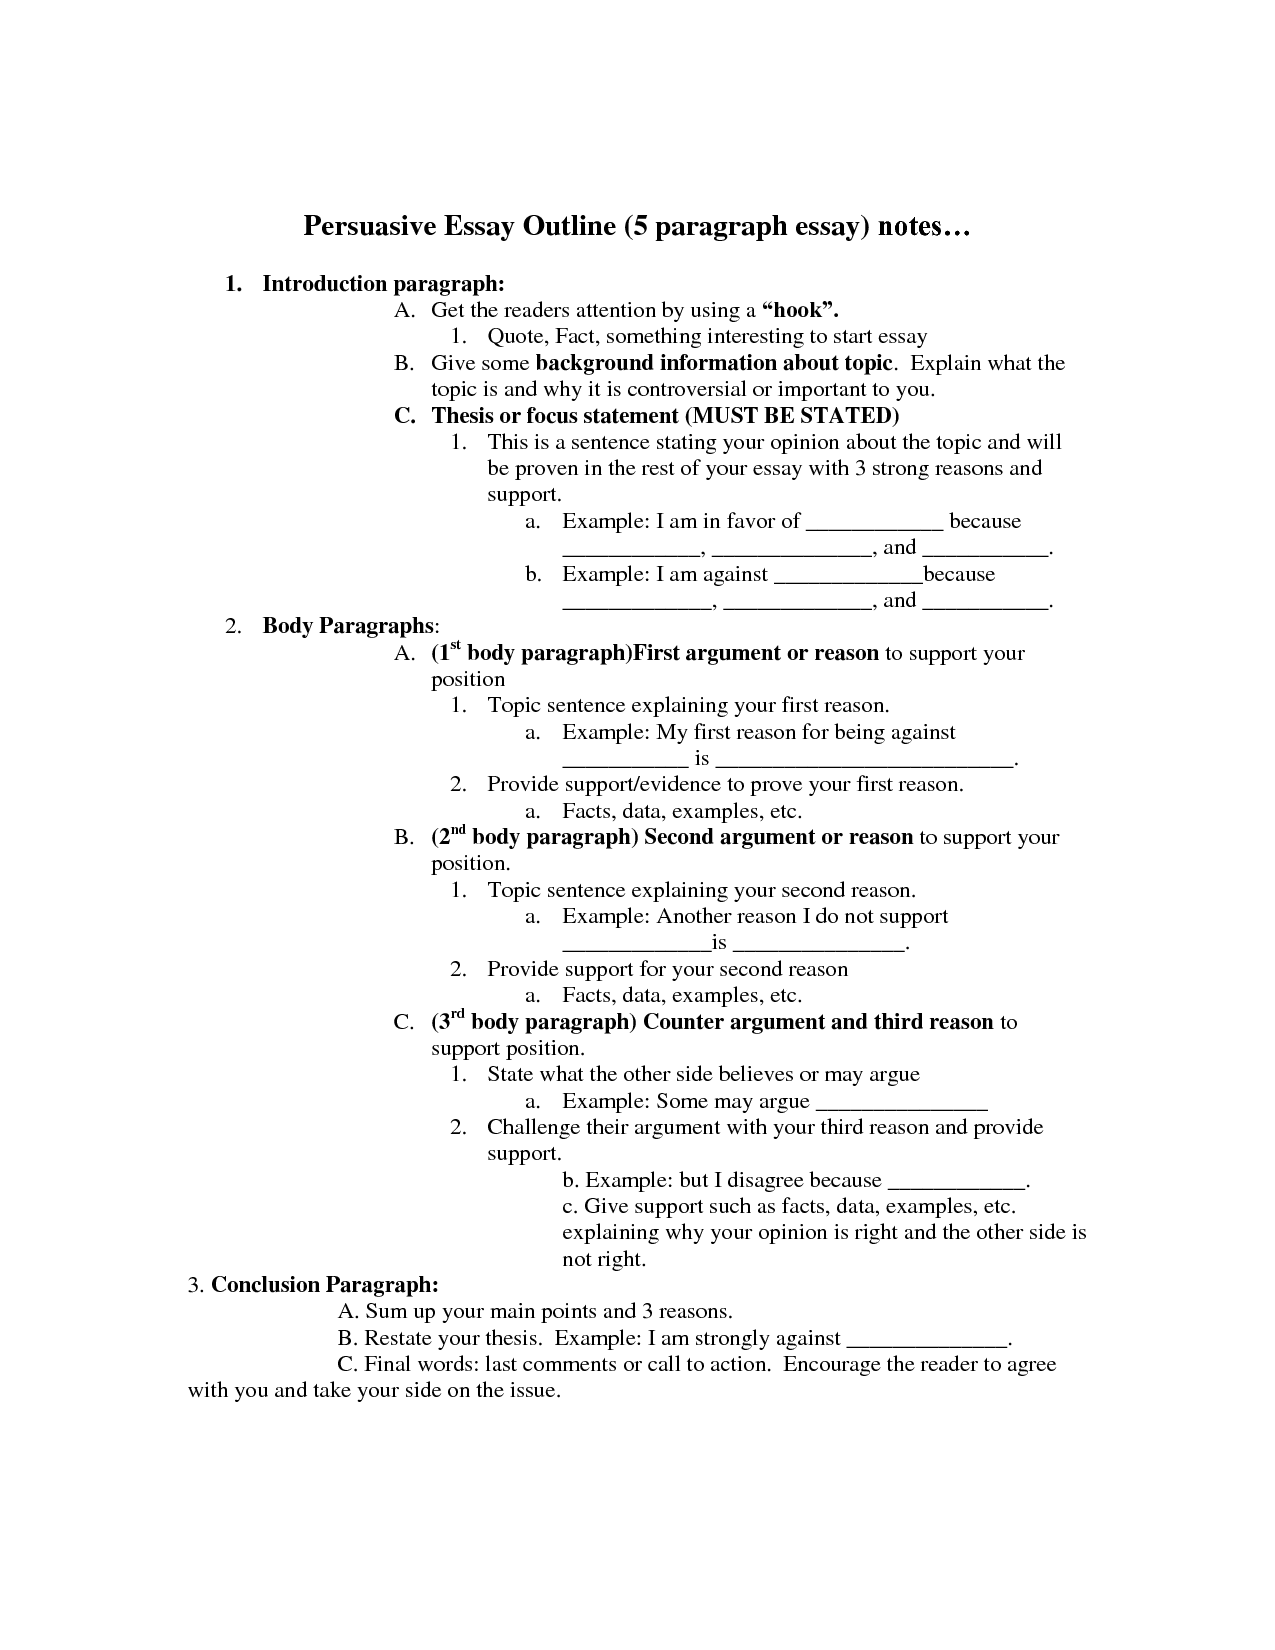 009 Essay Example Outline For Stirring Persuasive Argumentative Middle School Writing Full